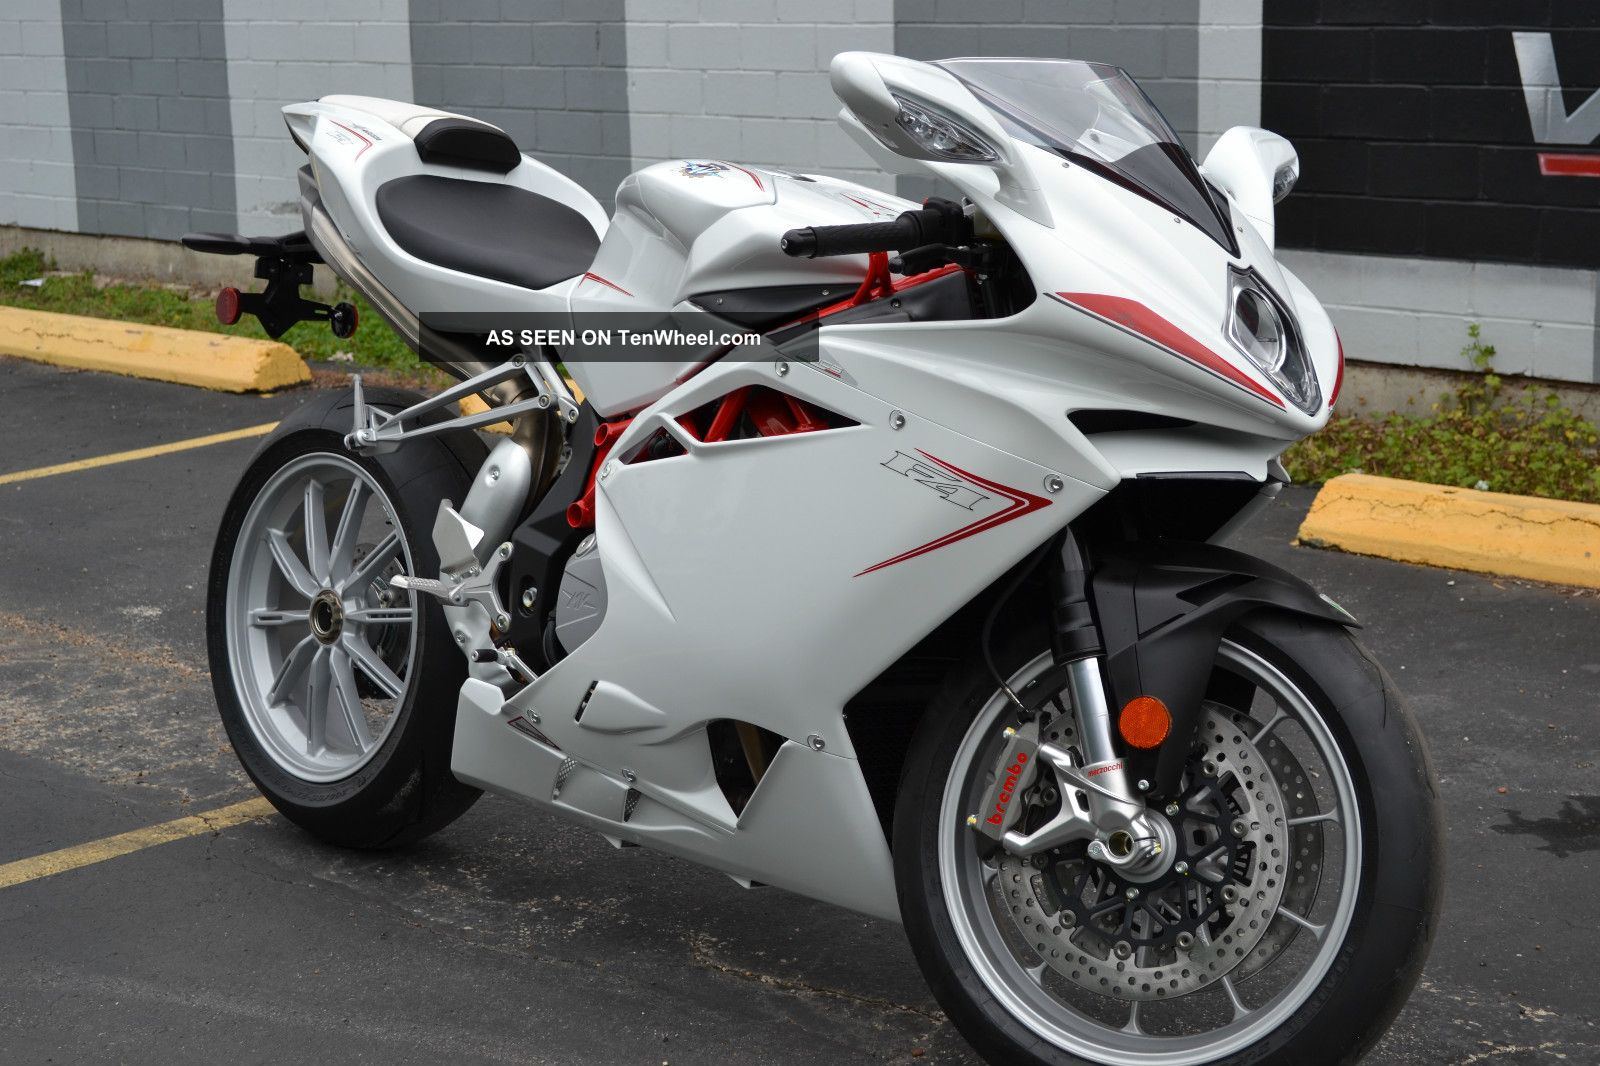 2013 Mv Agusta F4 1000 Ready To For Other Models MV Agusta photo